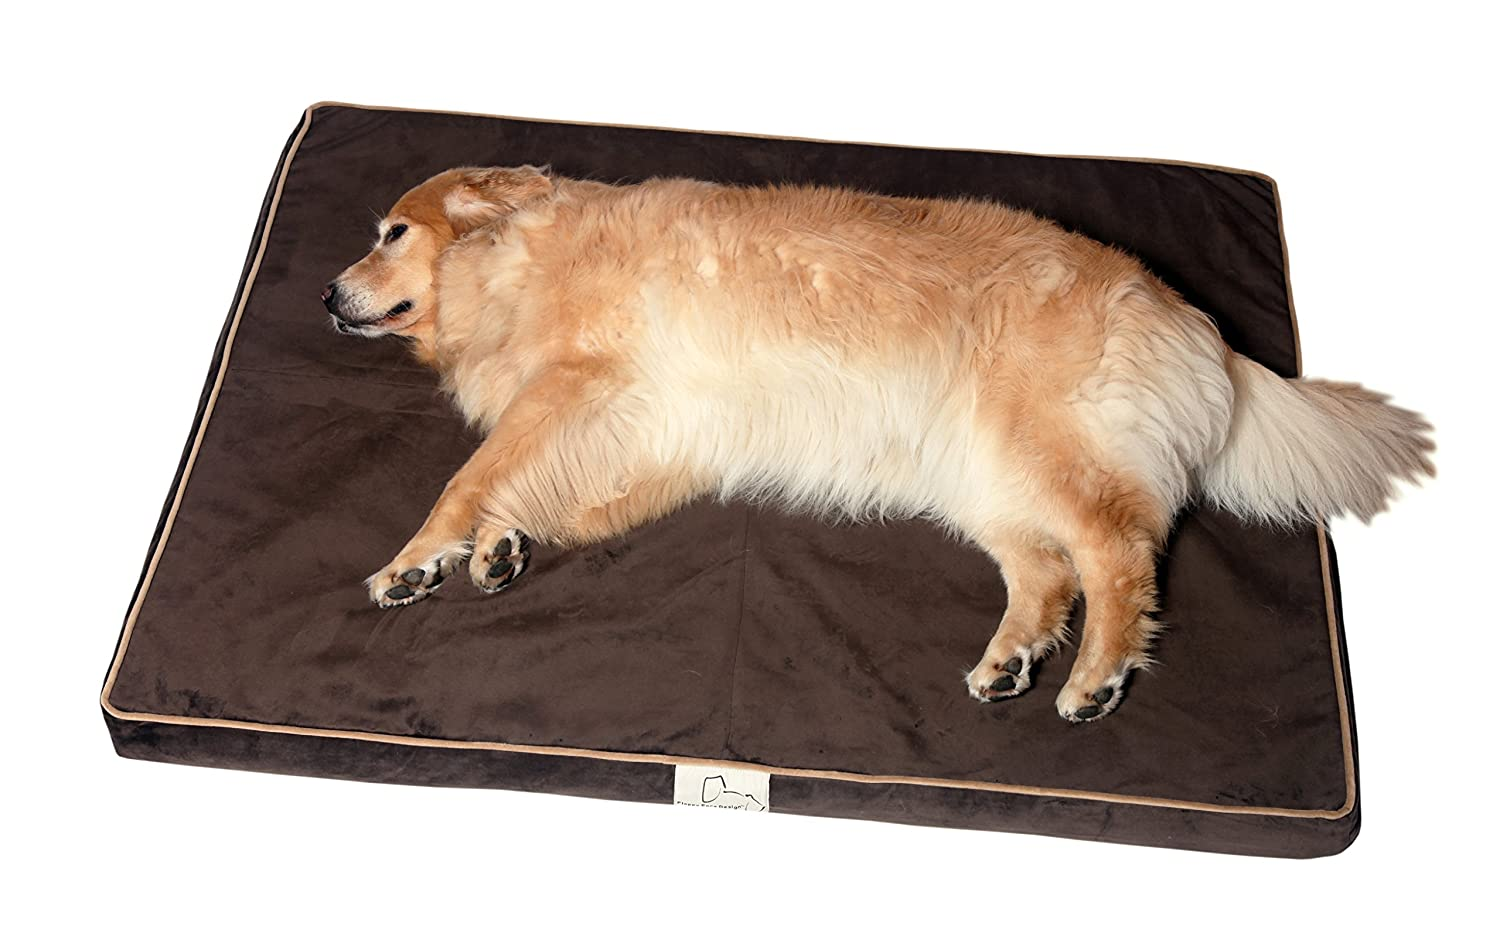 Chocolate Extra Large Chocolate Extra Large Floppy Ears Design Microfiber Gentle Giant Bed For Really BIG Dogs, Chocolate, XL, 50  x 39